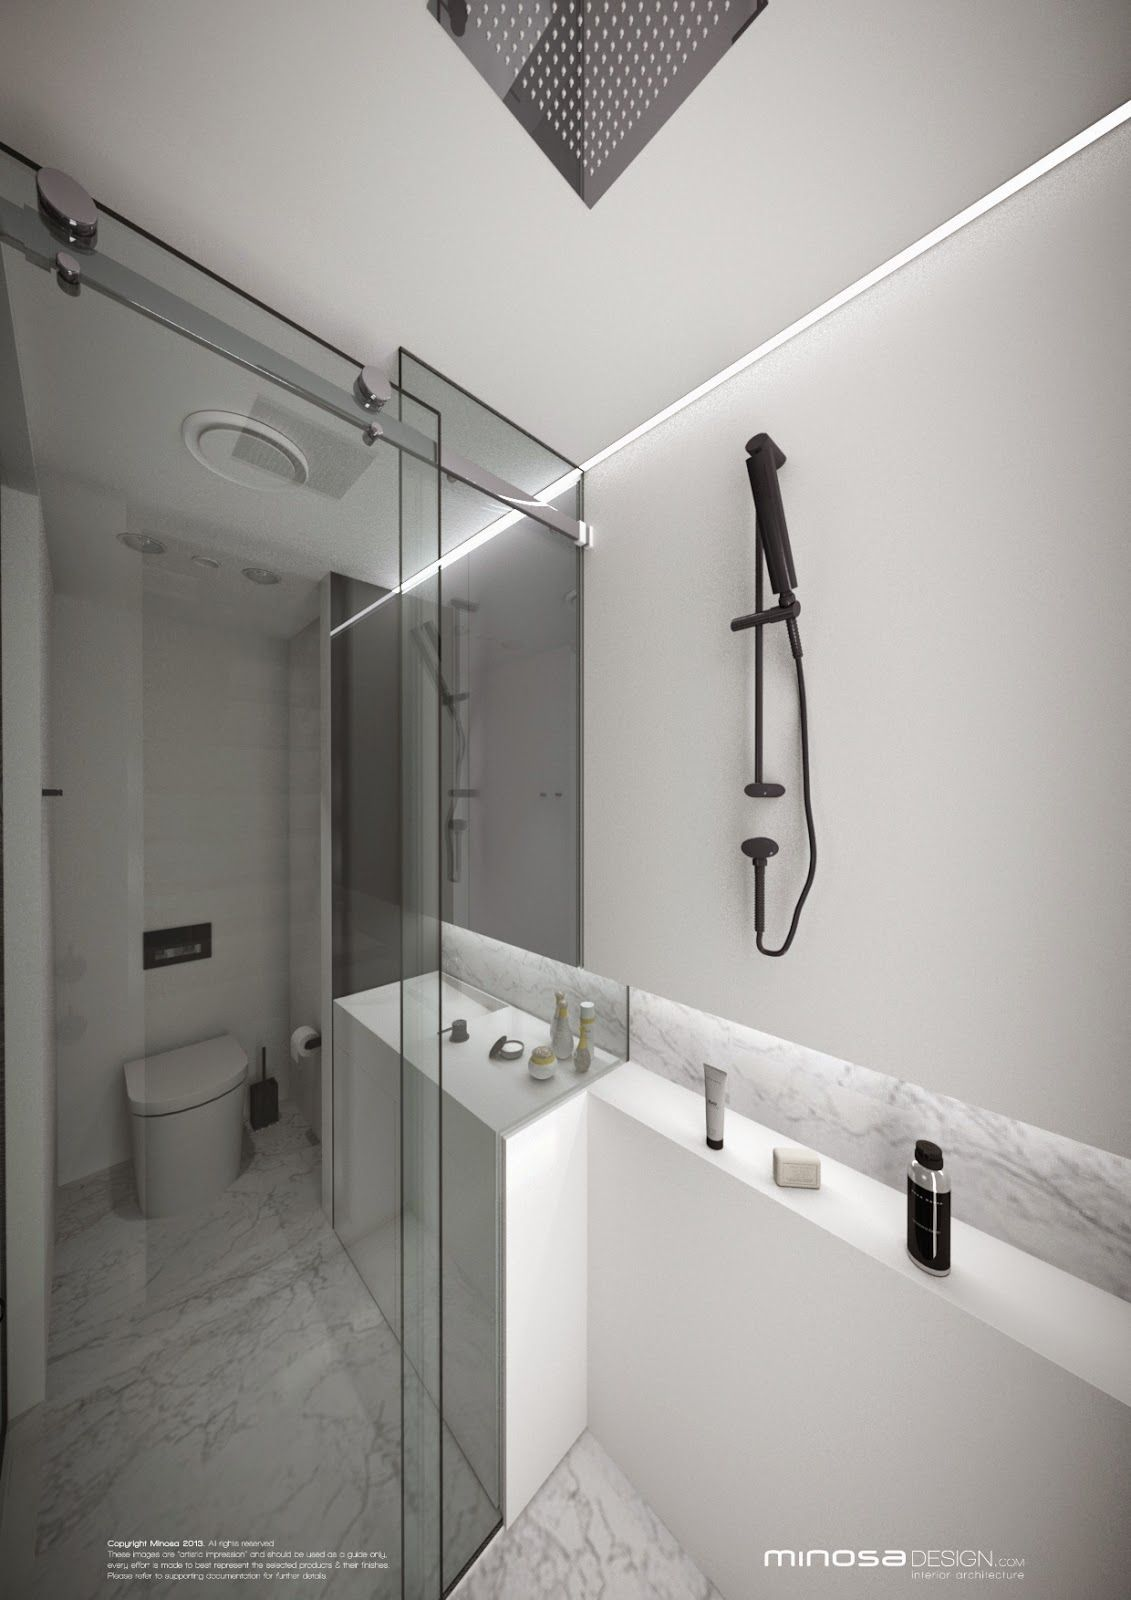 Minosa Design: Small Bathroom & Glass walls. Why not? | Bathrooms ...